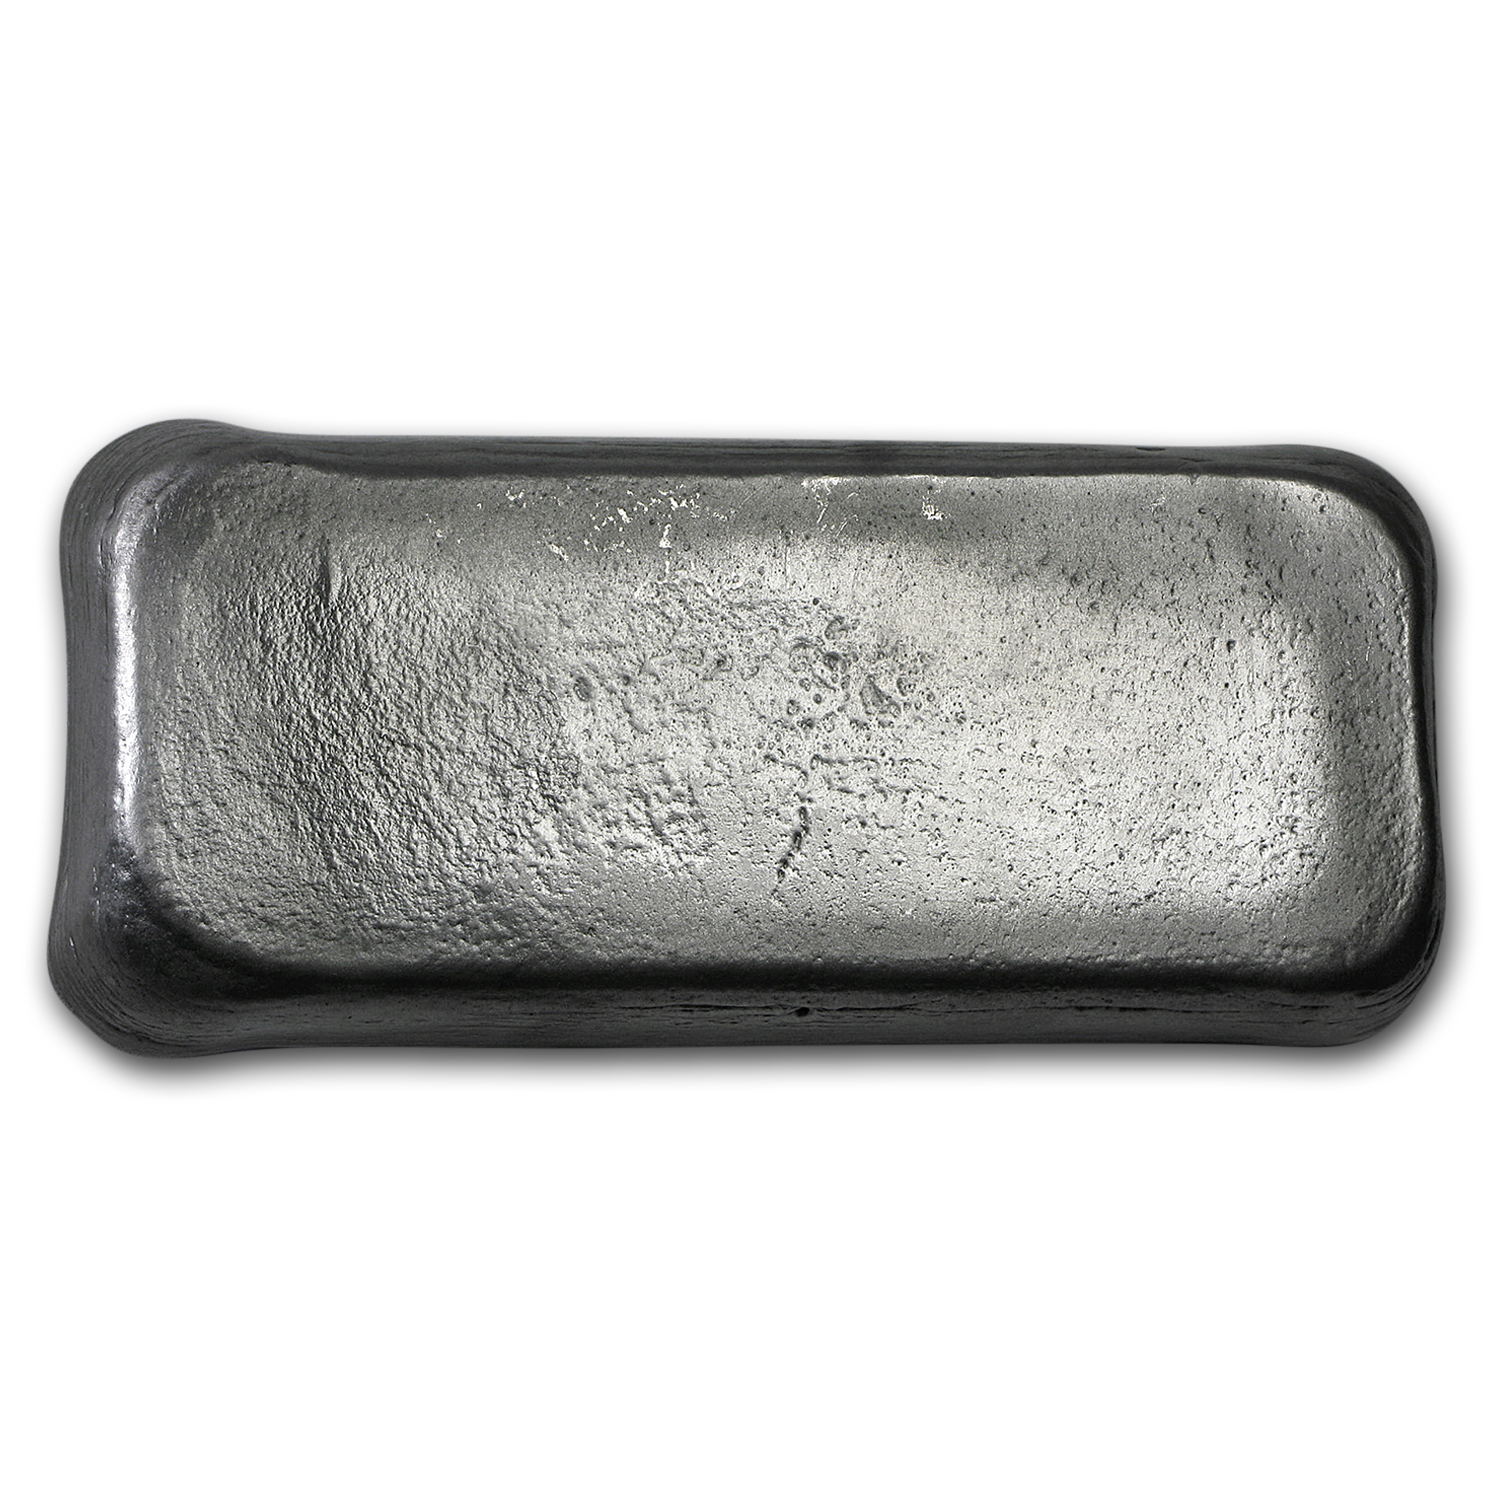 20 oz Silver Bar - Bison Bullion